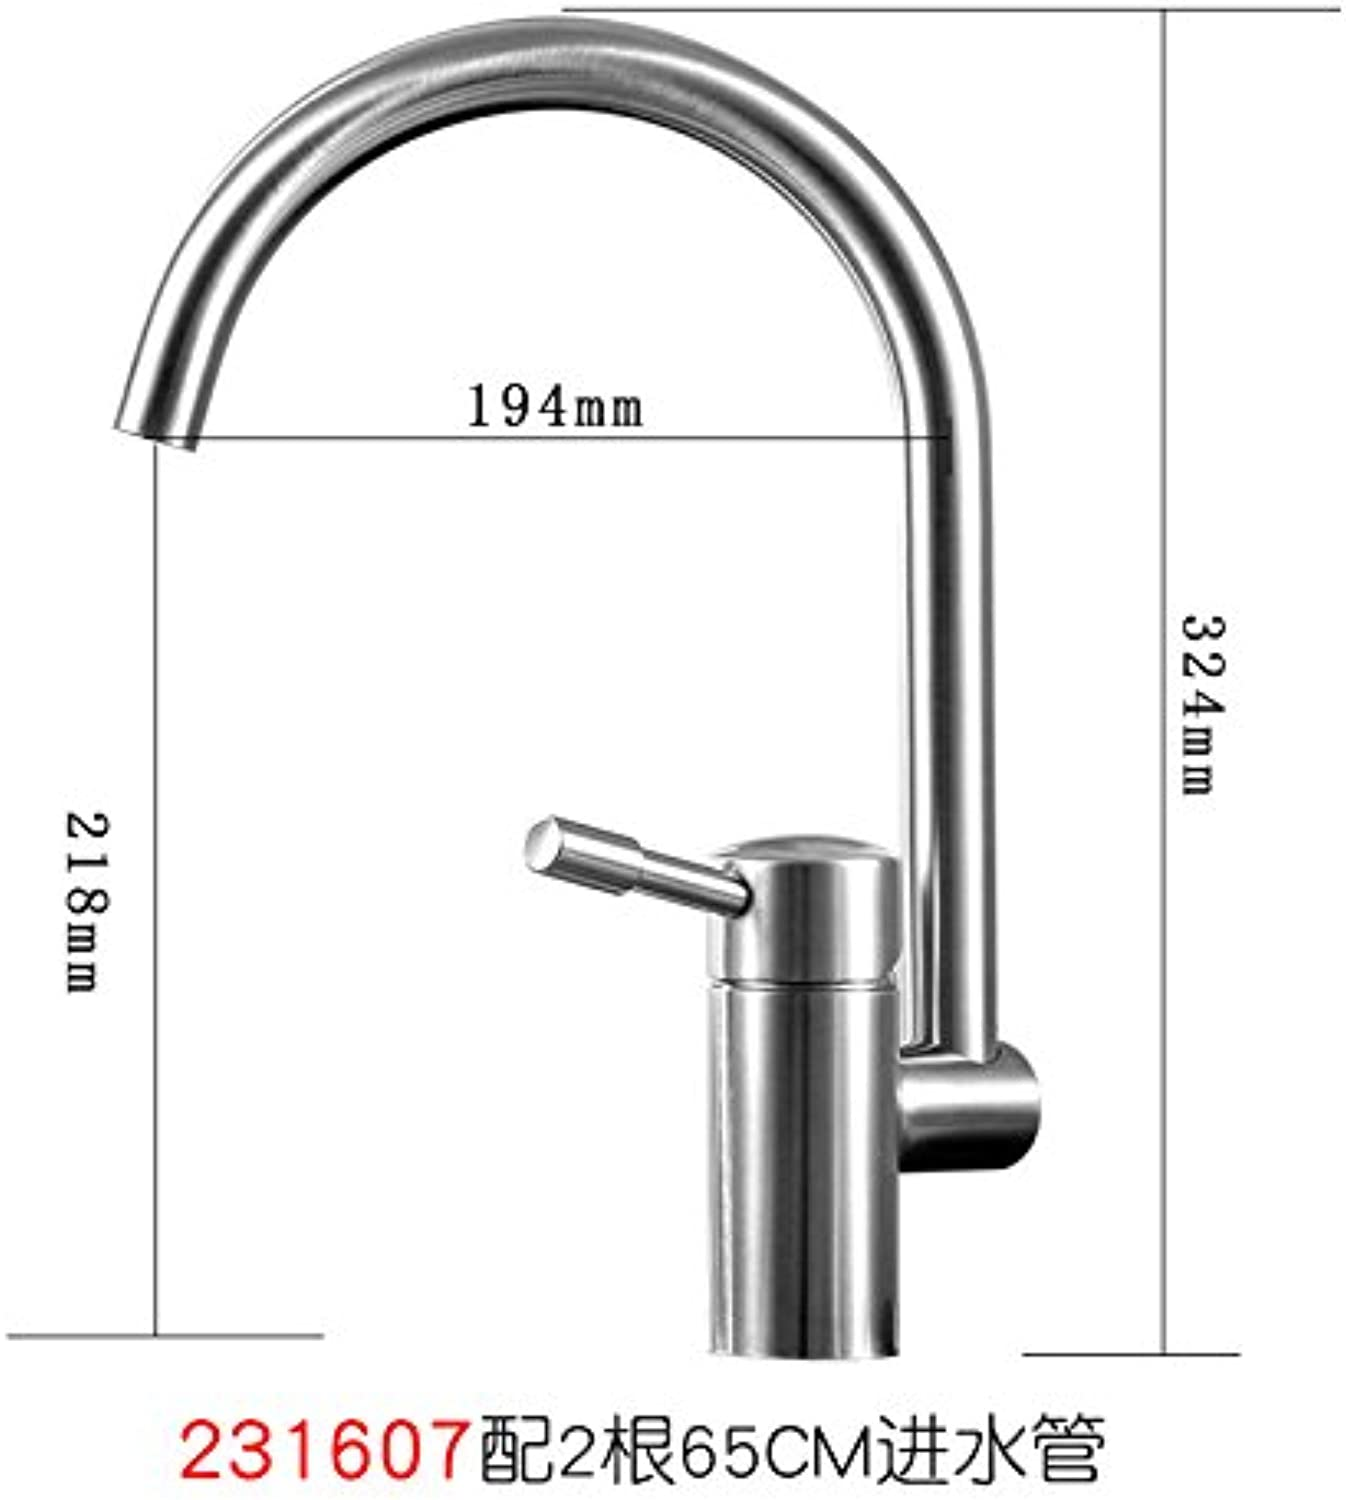 Lpophy Bathroom Sink Mixer Taps Faucet Bath Waterfall Cold and Hot Water Tap for Washroom Bathroom and Kitchen 304 Stainless Steel Hot and Cold redatable B